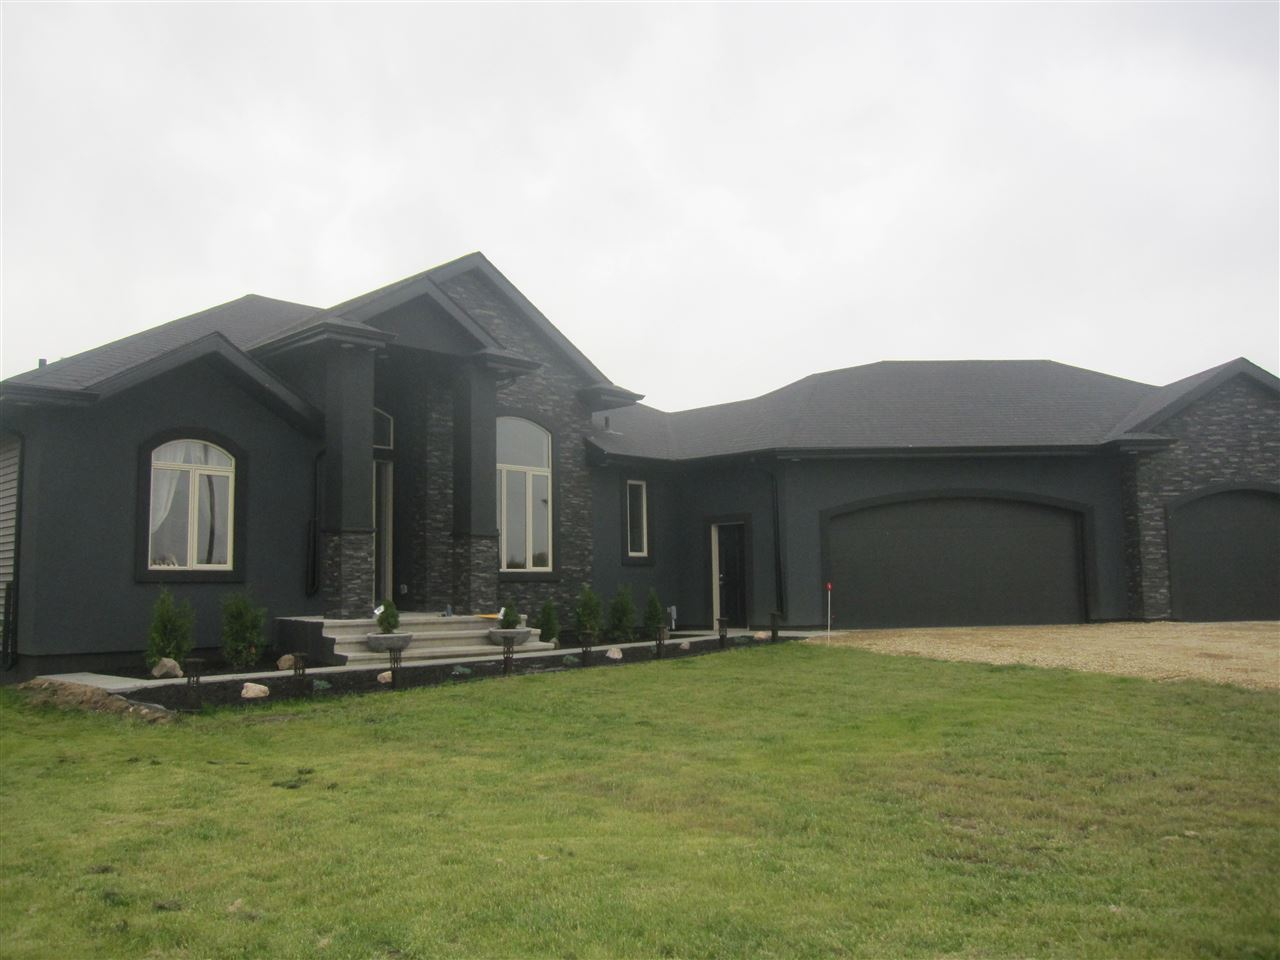 Absolutely gorgeous custom-built 1721 sq.ft. bungalow situated on 5 acres in Sanctuary Estates. approx. 30 minutes south east. Open plan with high ceilings in the great room and formal  dining area. Nice kitchen with a generous nook with access to a large south-facing deck. Spacious great room is hilited with an attractive floor to ceiling stone fireplace. Good size master has a walk-in closet and an elegant ensuite with jet-tub and separate double shower. Fully  finished basement has the 4th and 5th bedrooms, a huge rec room, wet-bar,  4 pce. bath and a THEATRE ROOM ( projector will stay). Fully finished heated triple attached garage.  Soft neutral colors throughout and tasteful use of maple hardwood, ceramic and quartz. Landscaping is complete. Truly a fine home for a family to enjoy!